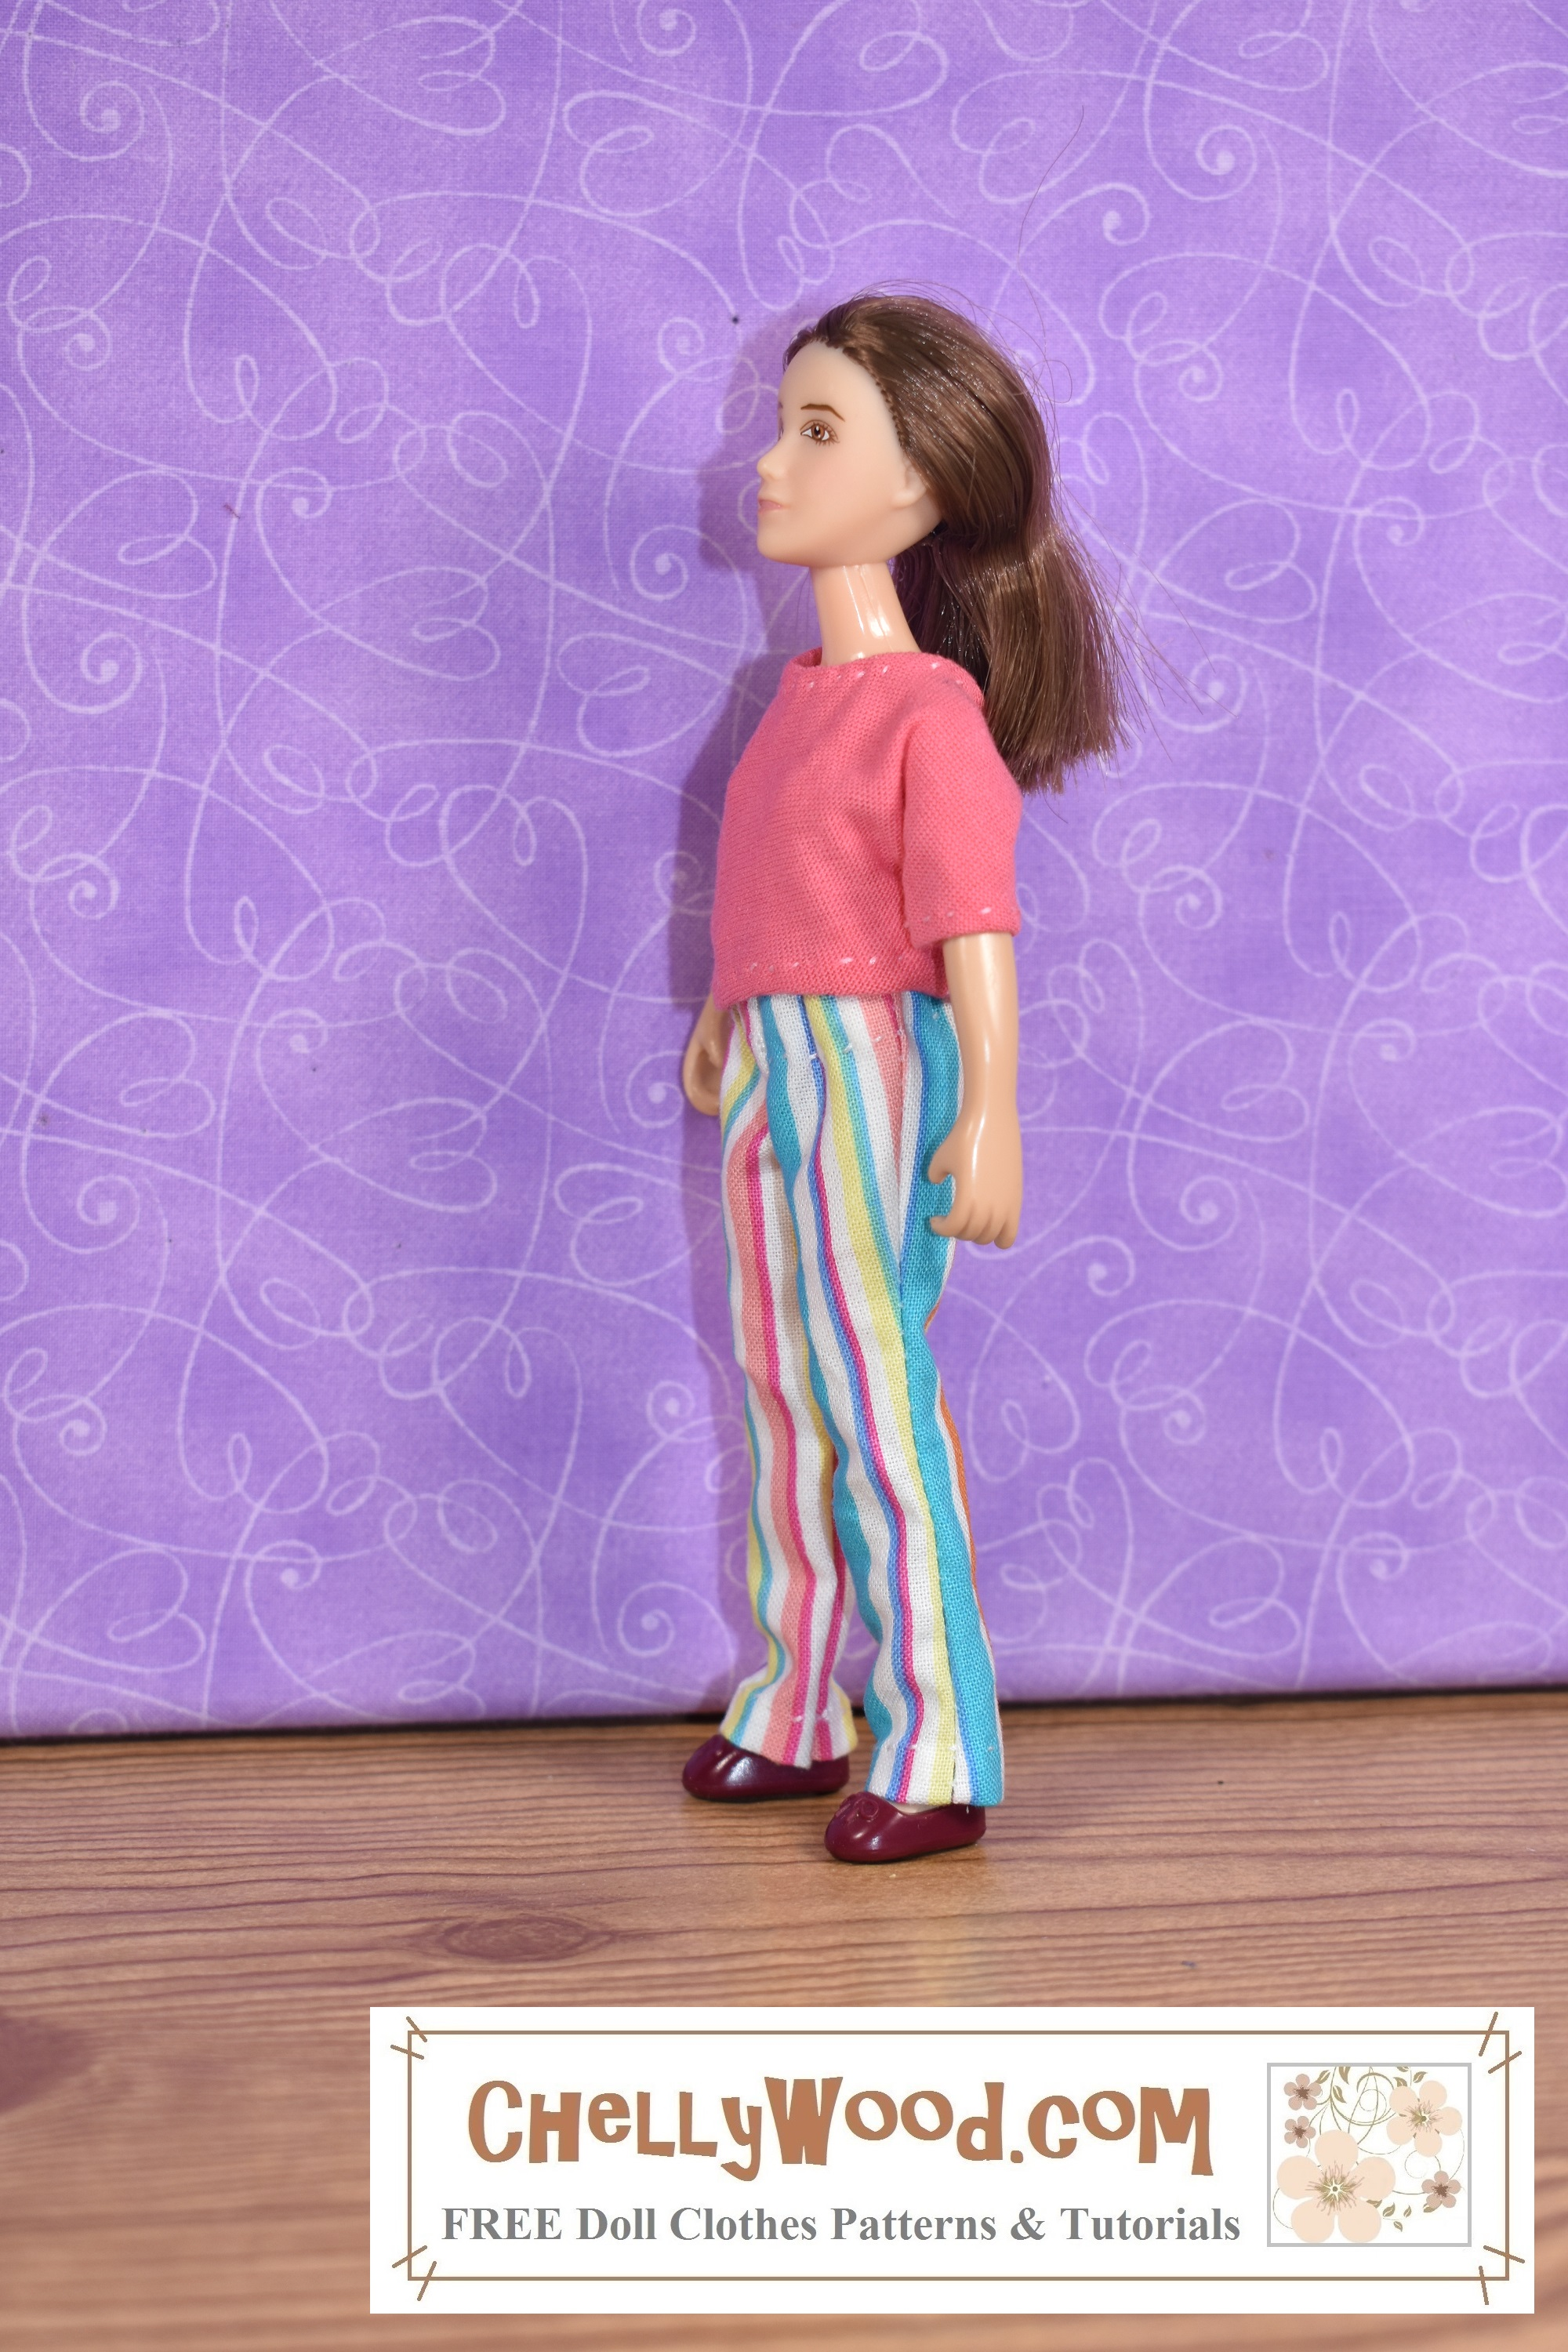 Please click here for all the free printable sewing patterns and tutorial videos you'll need to make an outfit like this jeans and a T-shirt combination that fits 6 inch dolls like the Breyer Rider dolls: https://wp.me/p1LmCj-GUq The image shows a Breyer Classic Rider (6 inches tall) wearing handmade jeans with an elastic waist and a handmade T-shirt.